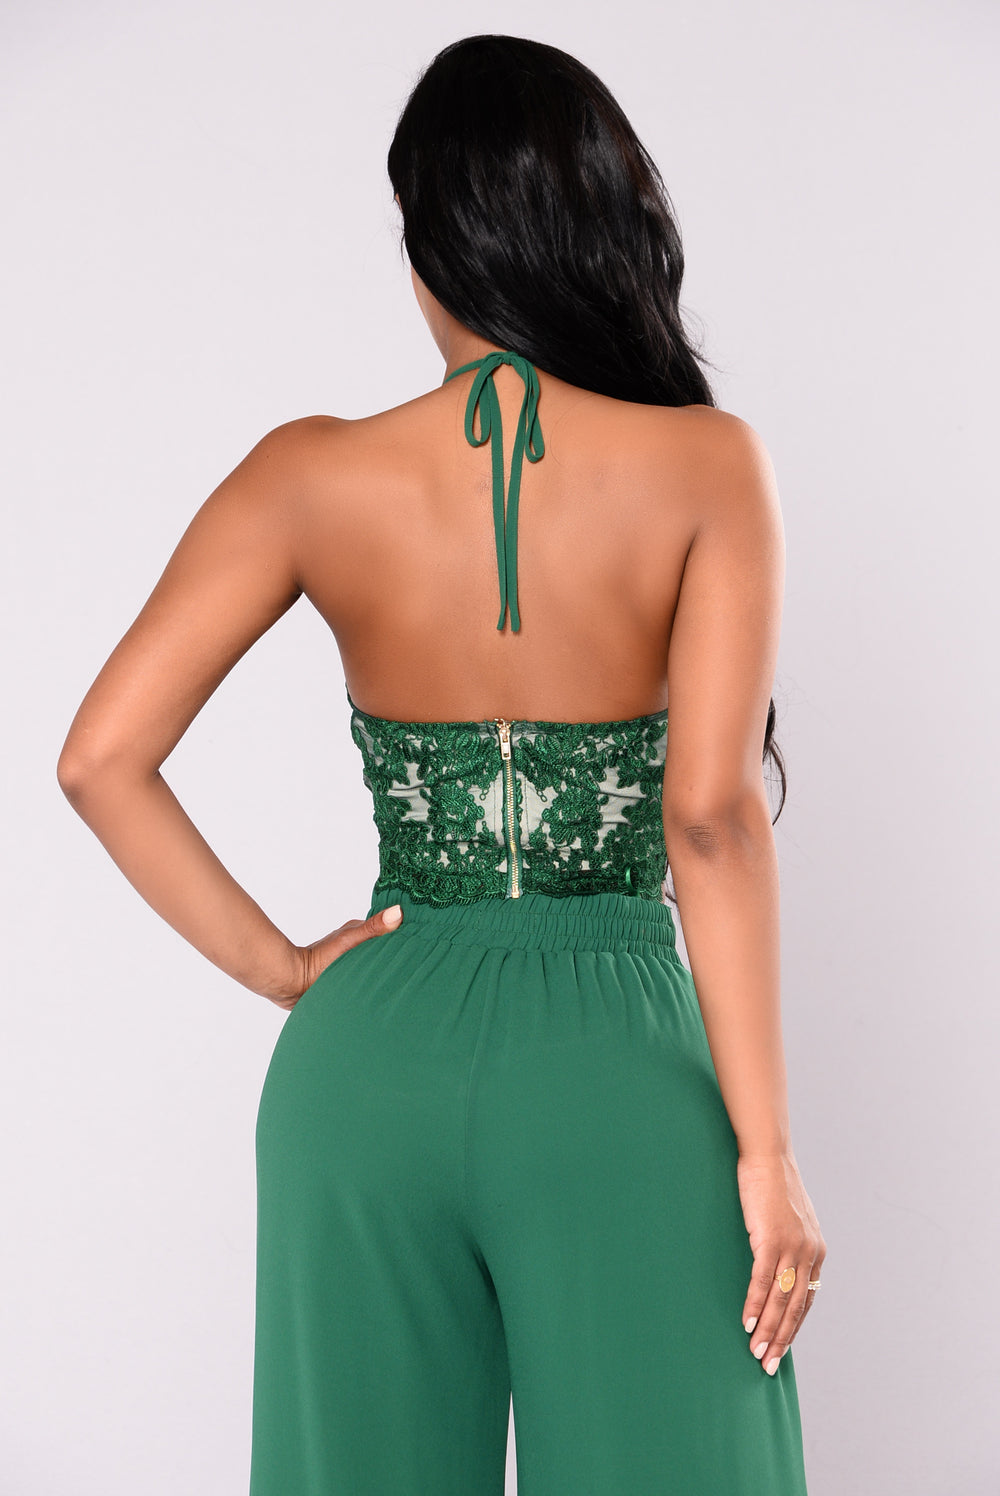 Wild Thoughts Lace Set - Hunter Green